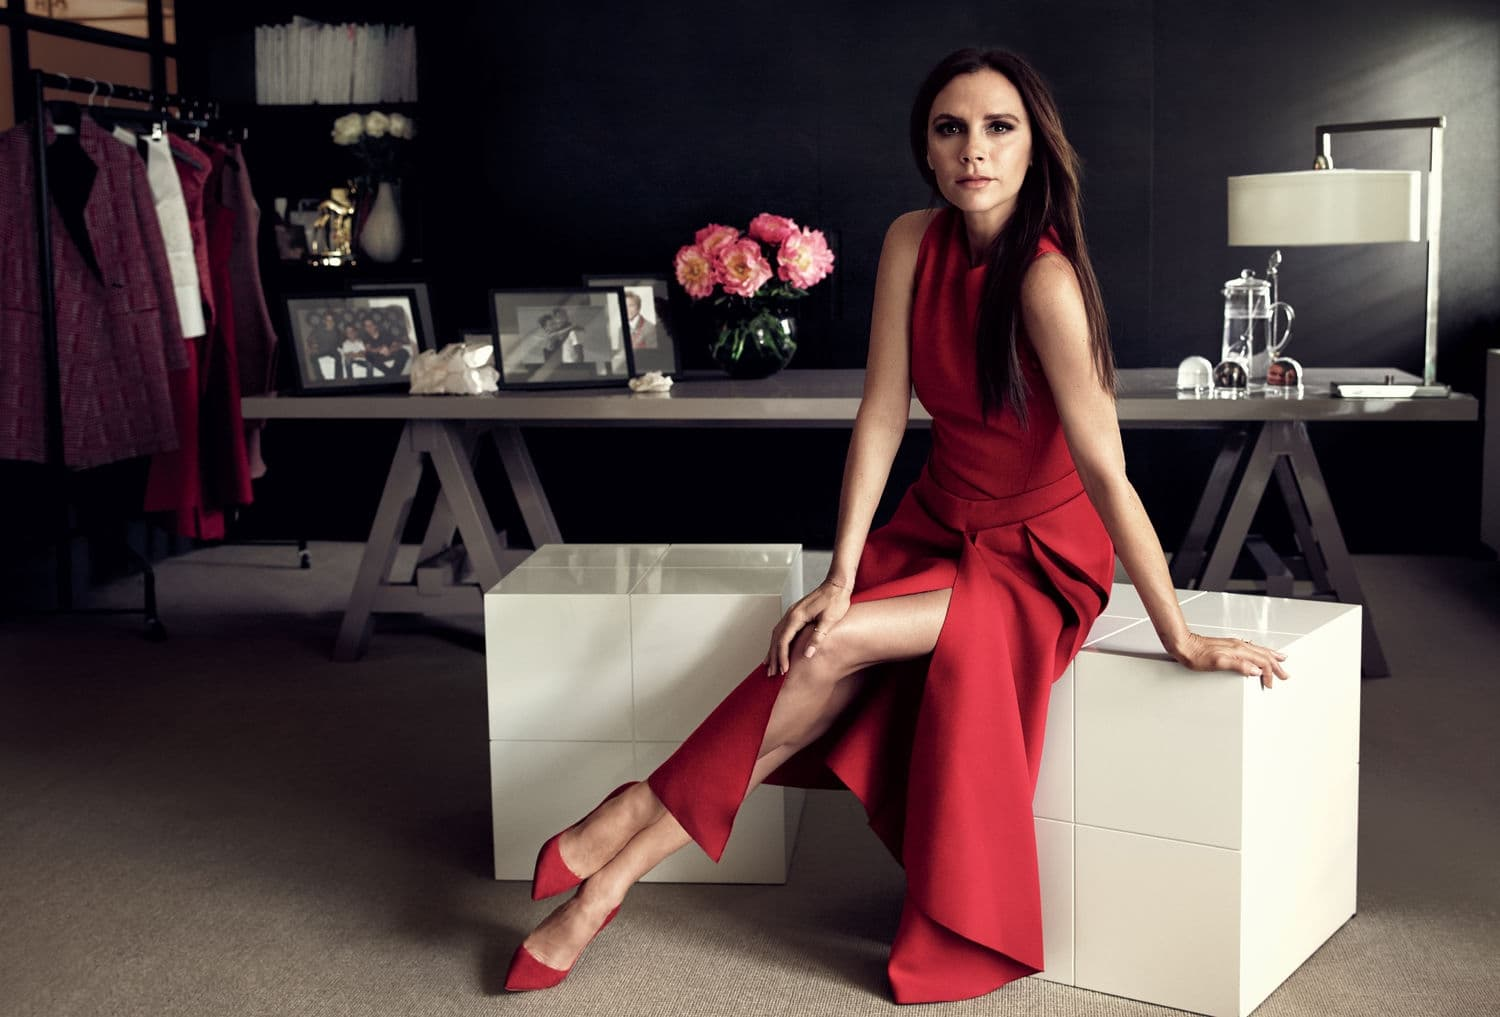 wallpaper of Victoria Beckham in red dress